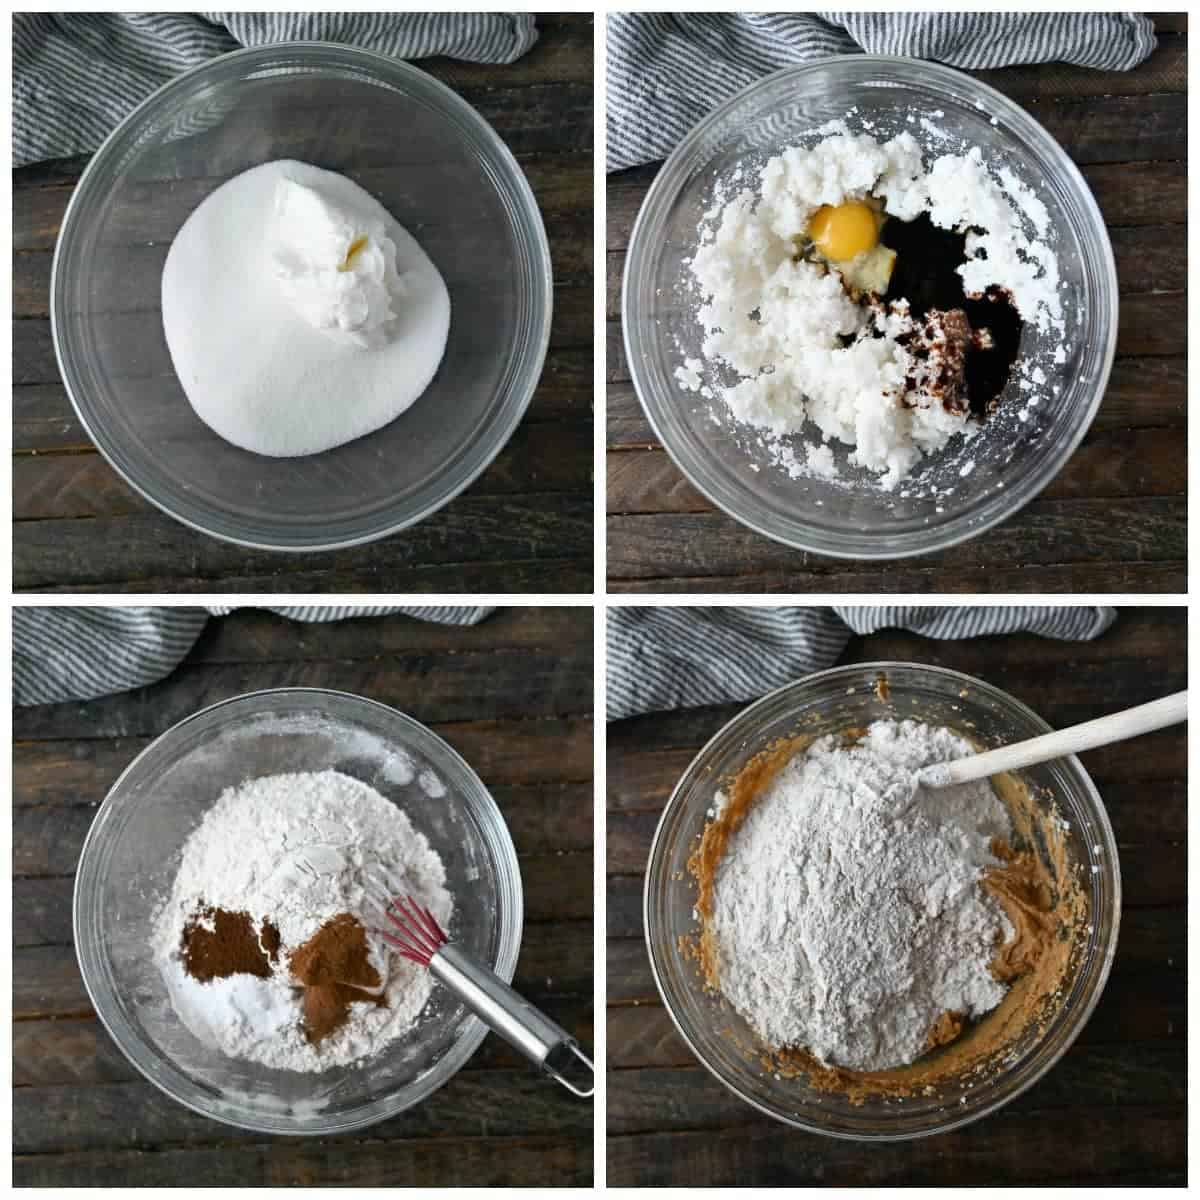 Four process photos. First one, sugar and shortening in a clear bowl. Second one, eggs and mollasses added in. Third one, dry ingredients in a clear bowl. Fourth one, dry ingredients being mixed into the wet ingredients.